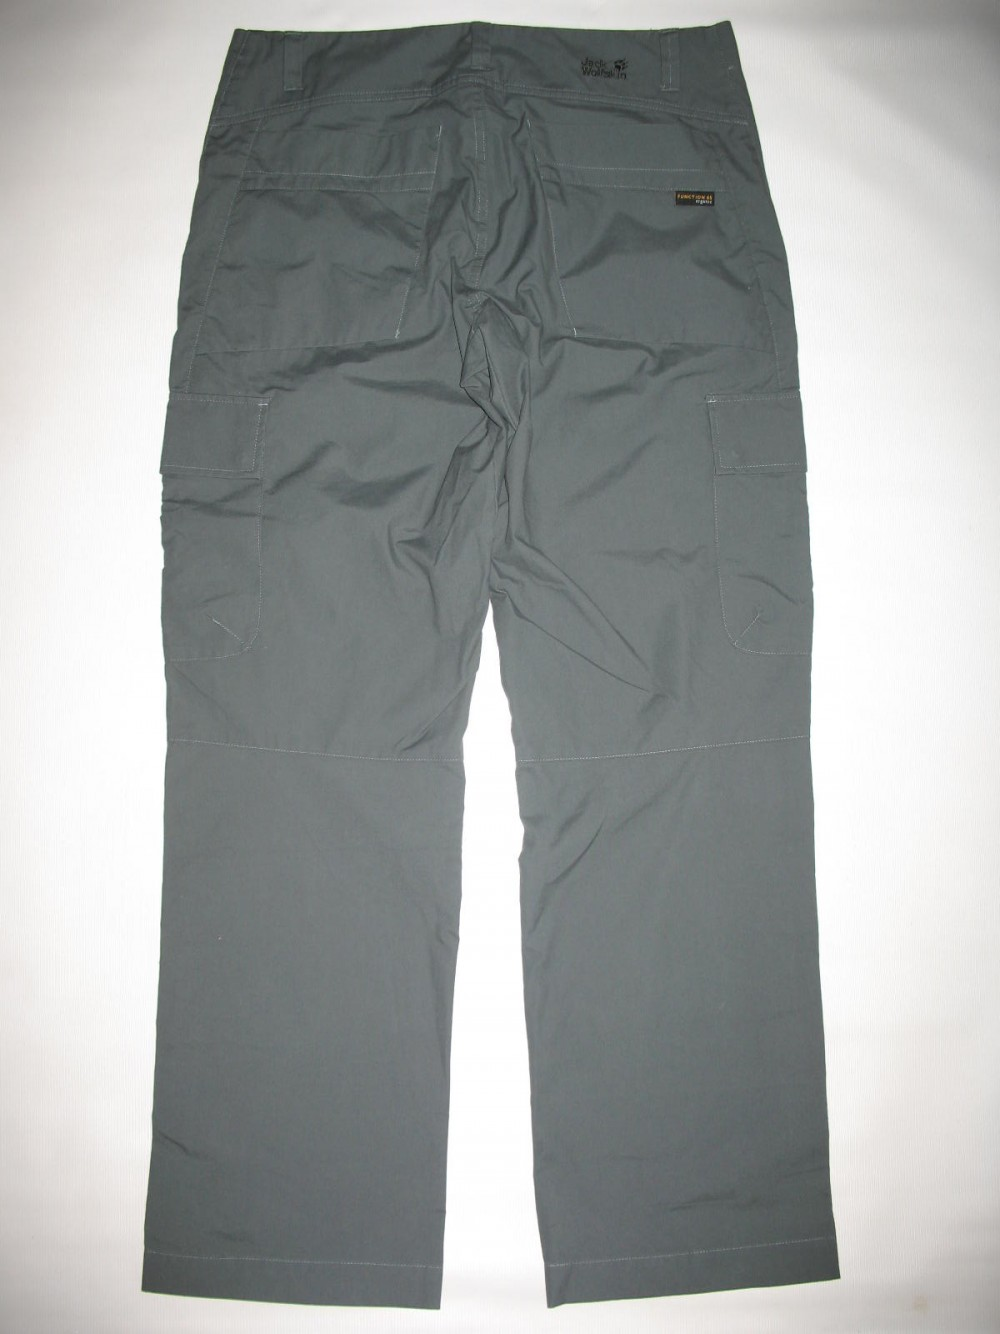 Штаны JACK WOLFSKIN North evo pants (размер 50/L) - 5